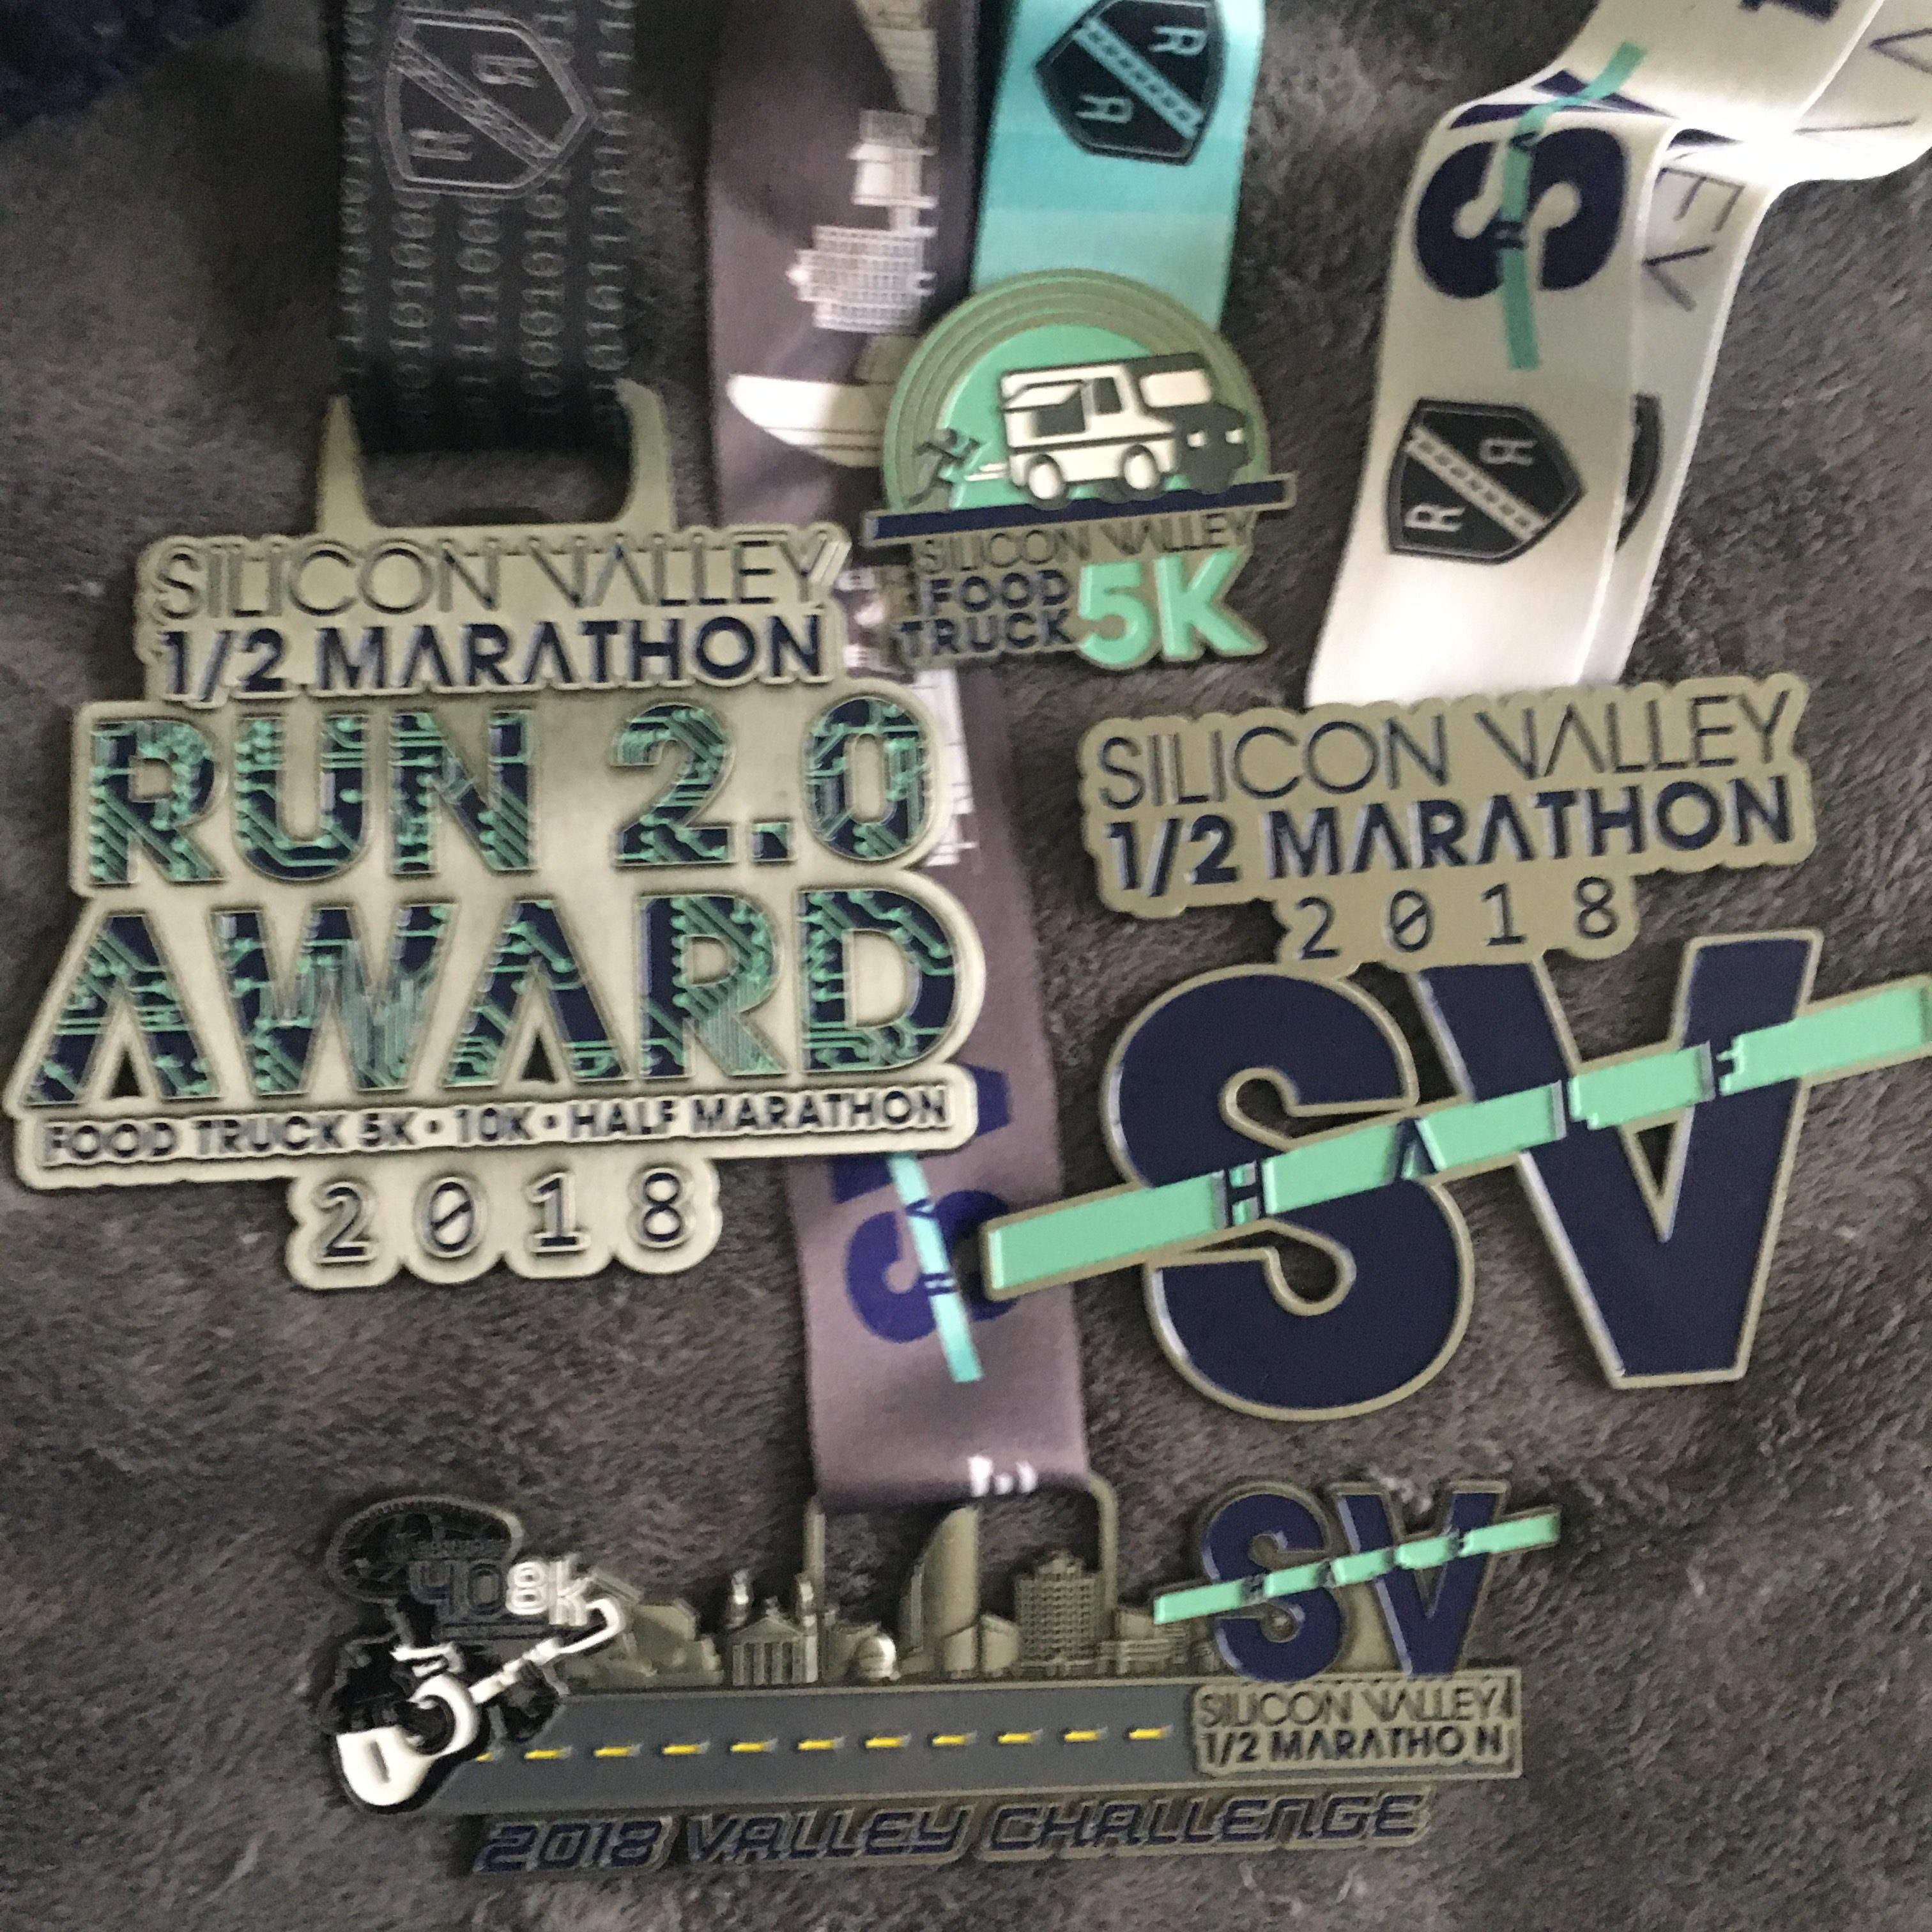 Here's the bling from the Inaugural Food Truck 5k and Silicon Valley Half Marathon, and a review. Have you signed up for next year?